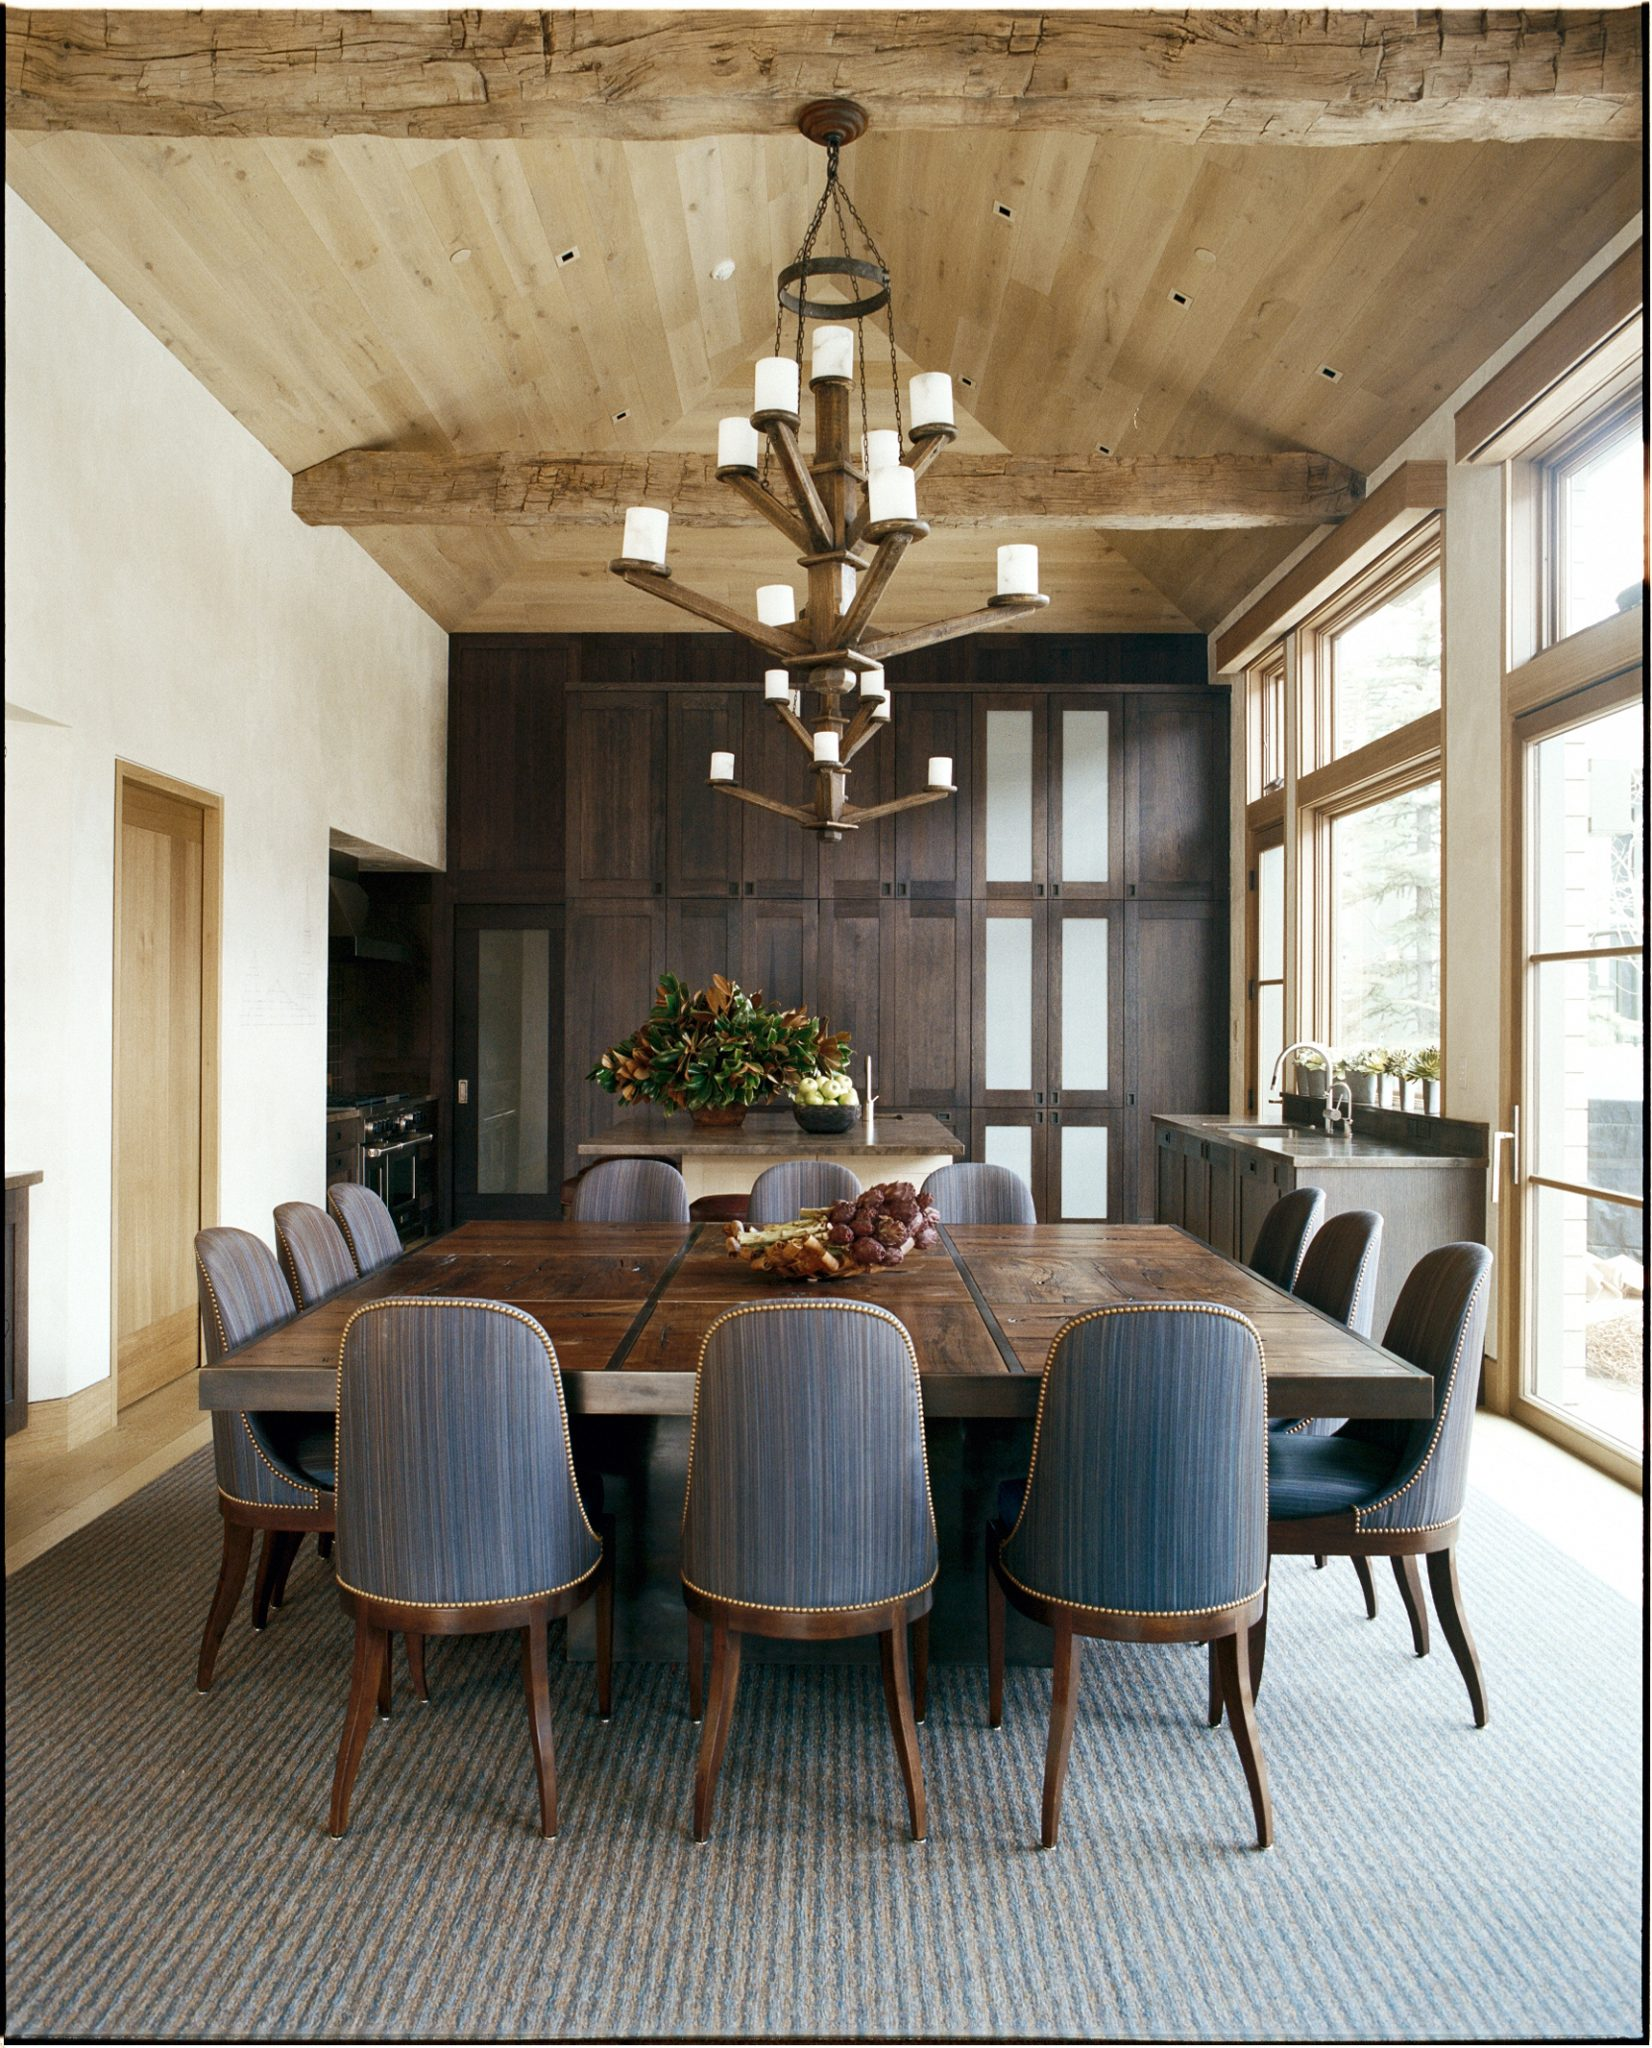 Bright dining room with rustic beams by Stephen Sills Associates